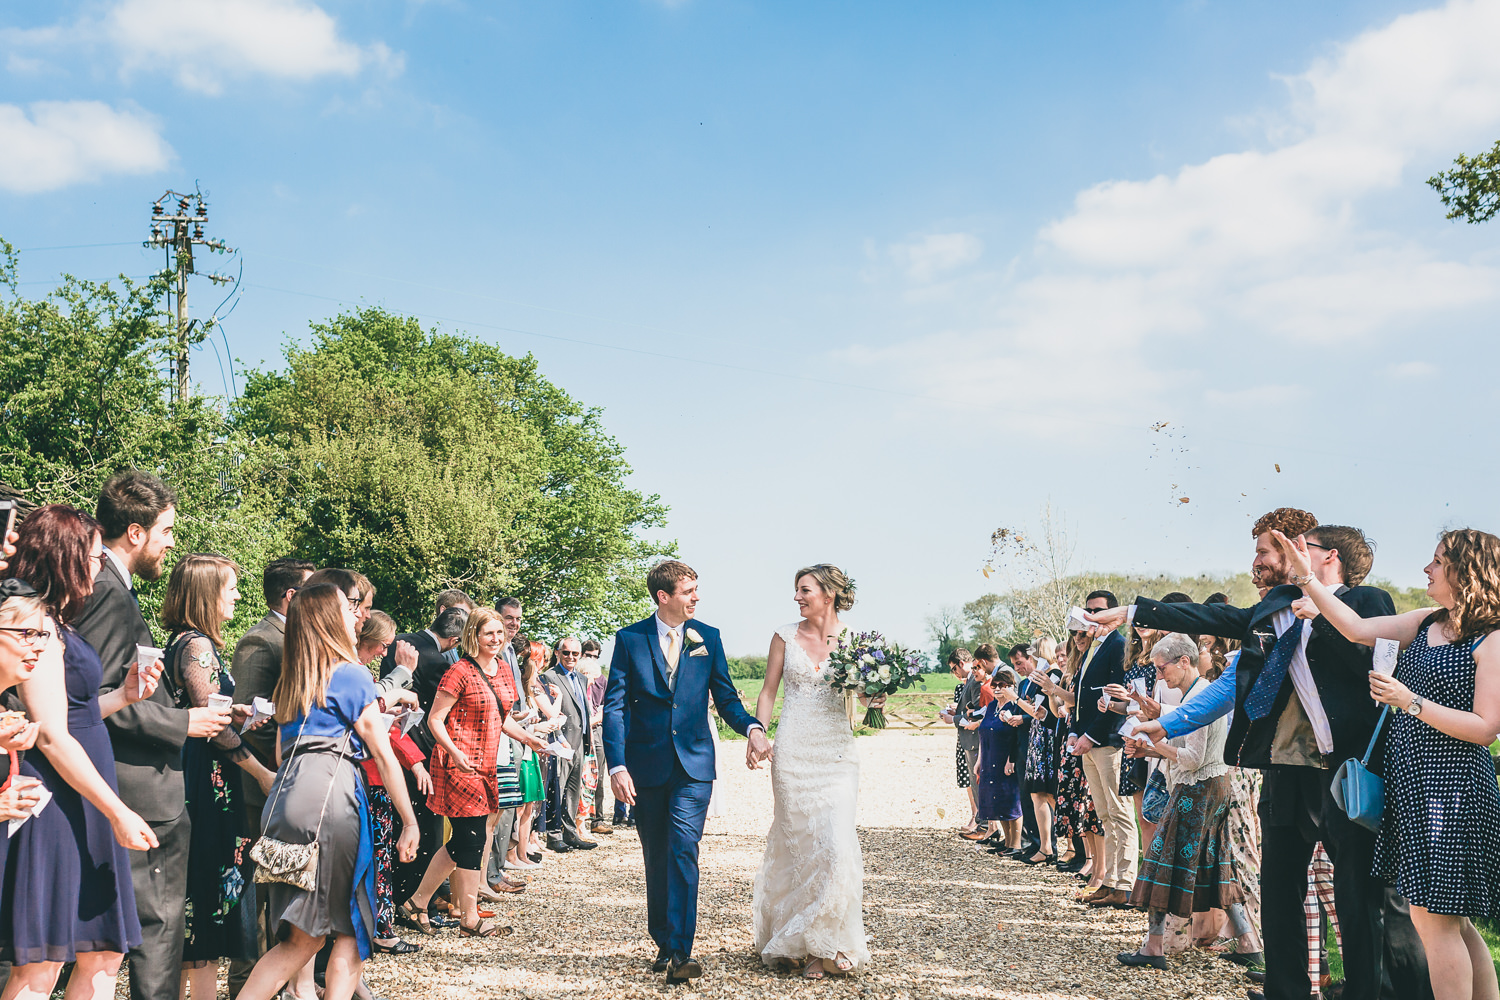 H&S | Winkworth Farm Wedding Photography-463.JPG